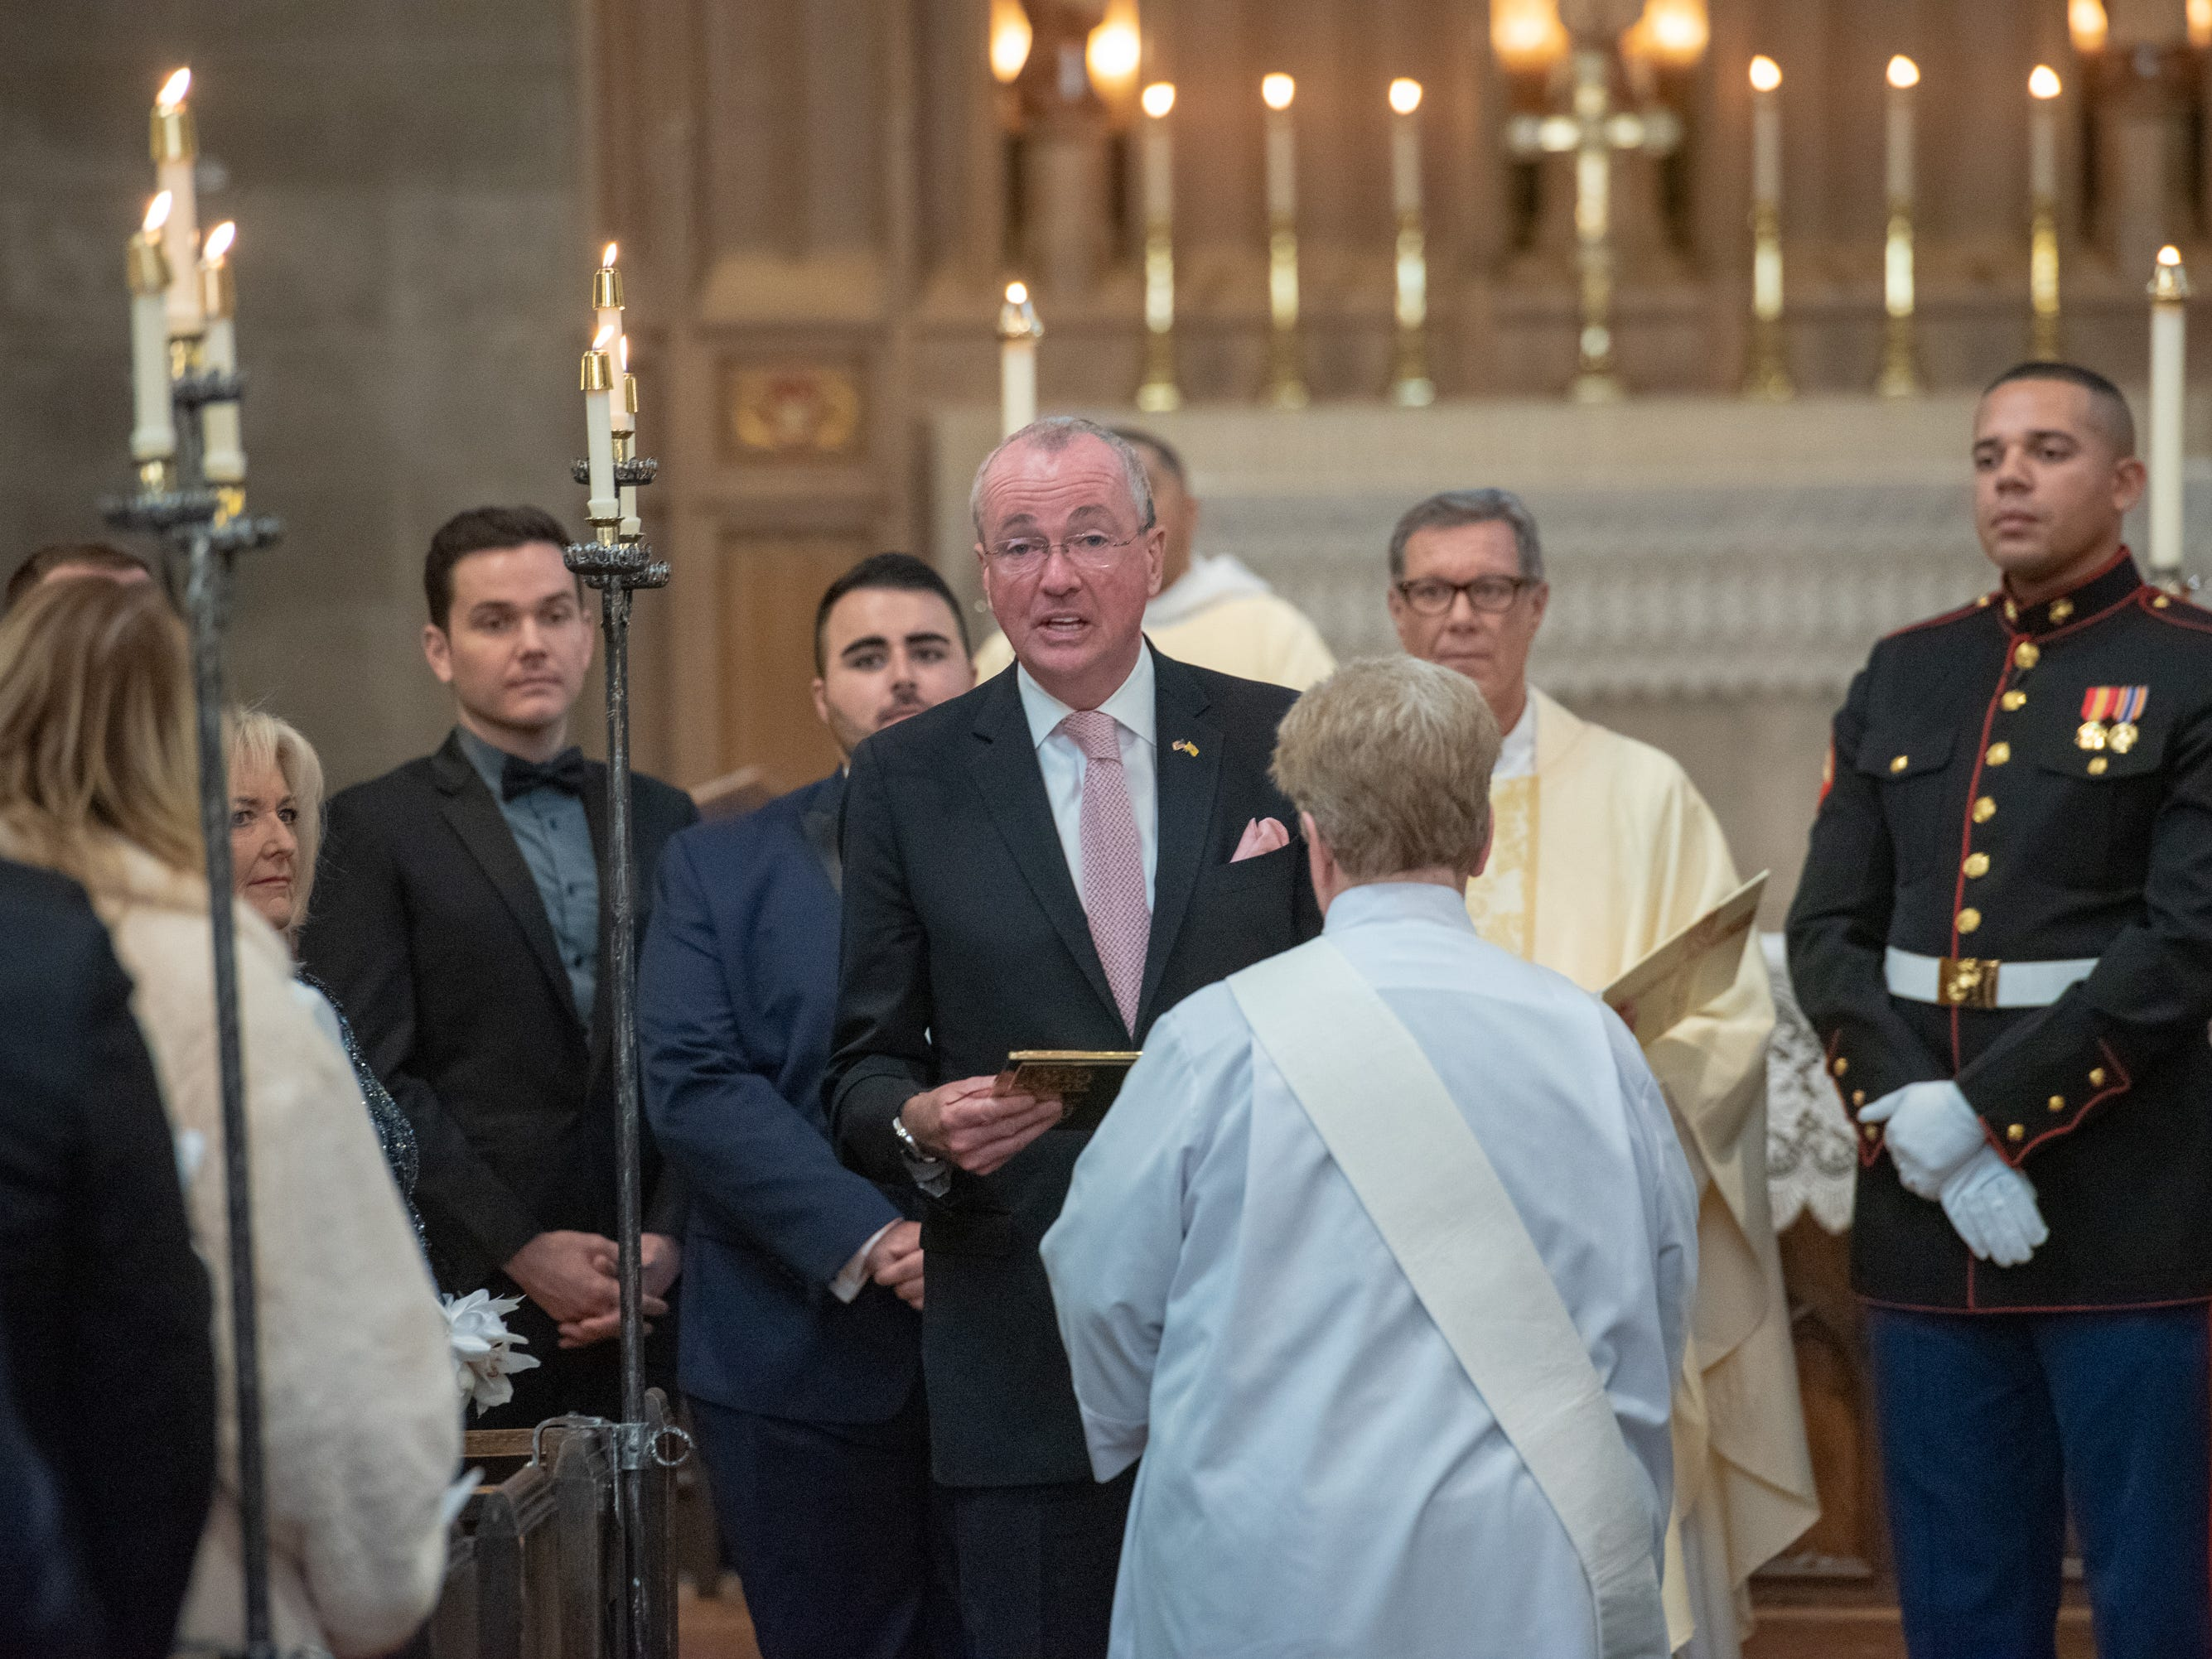 Gov. Phil Murphy read at the ceremony. Christian Fuscarino, (visible on the left shoulder of the governor) Executive Director of Garden State Equality, and U.S. Marine Corporal Aaron Williams (at right) were married at Trinity Church in Asbury Park on Sunday, November 11, 2018.